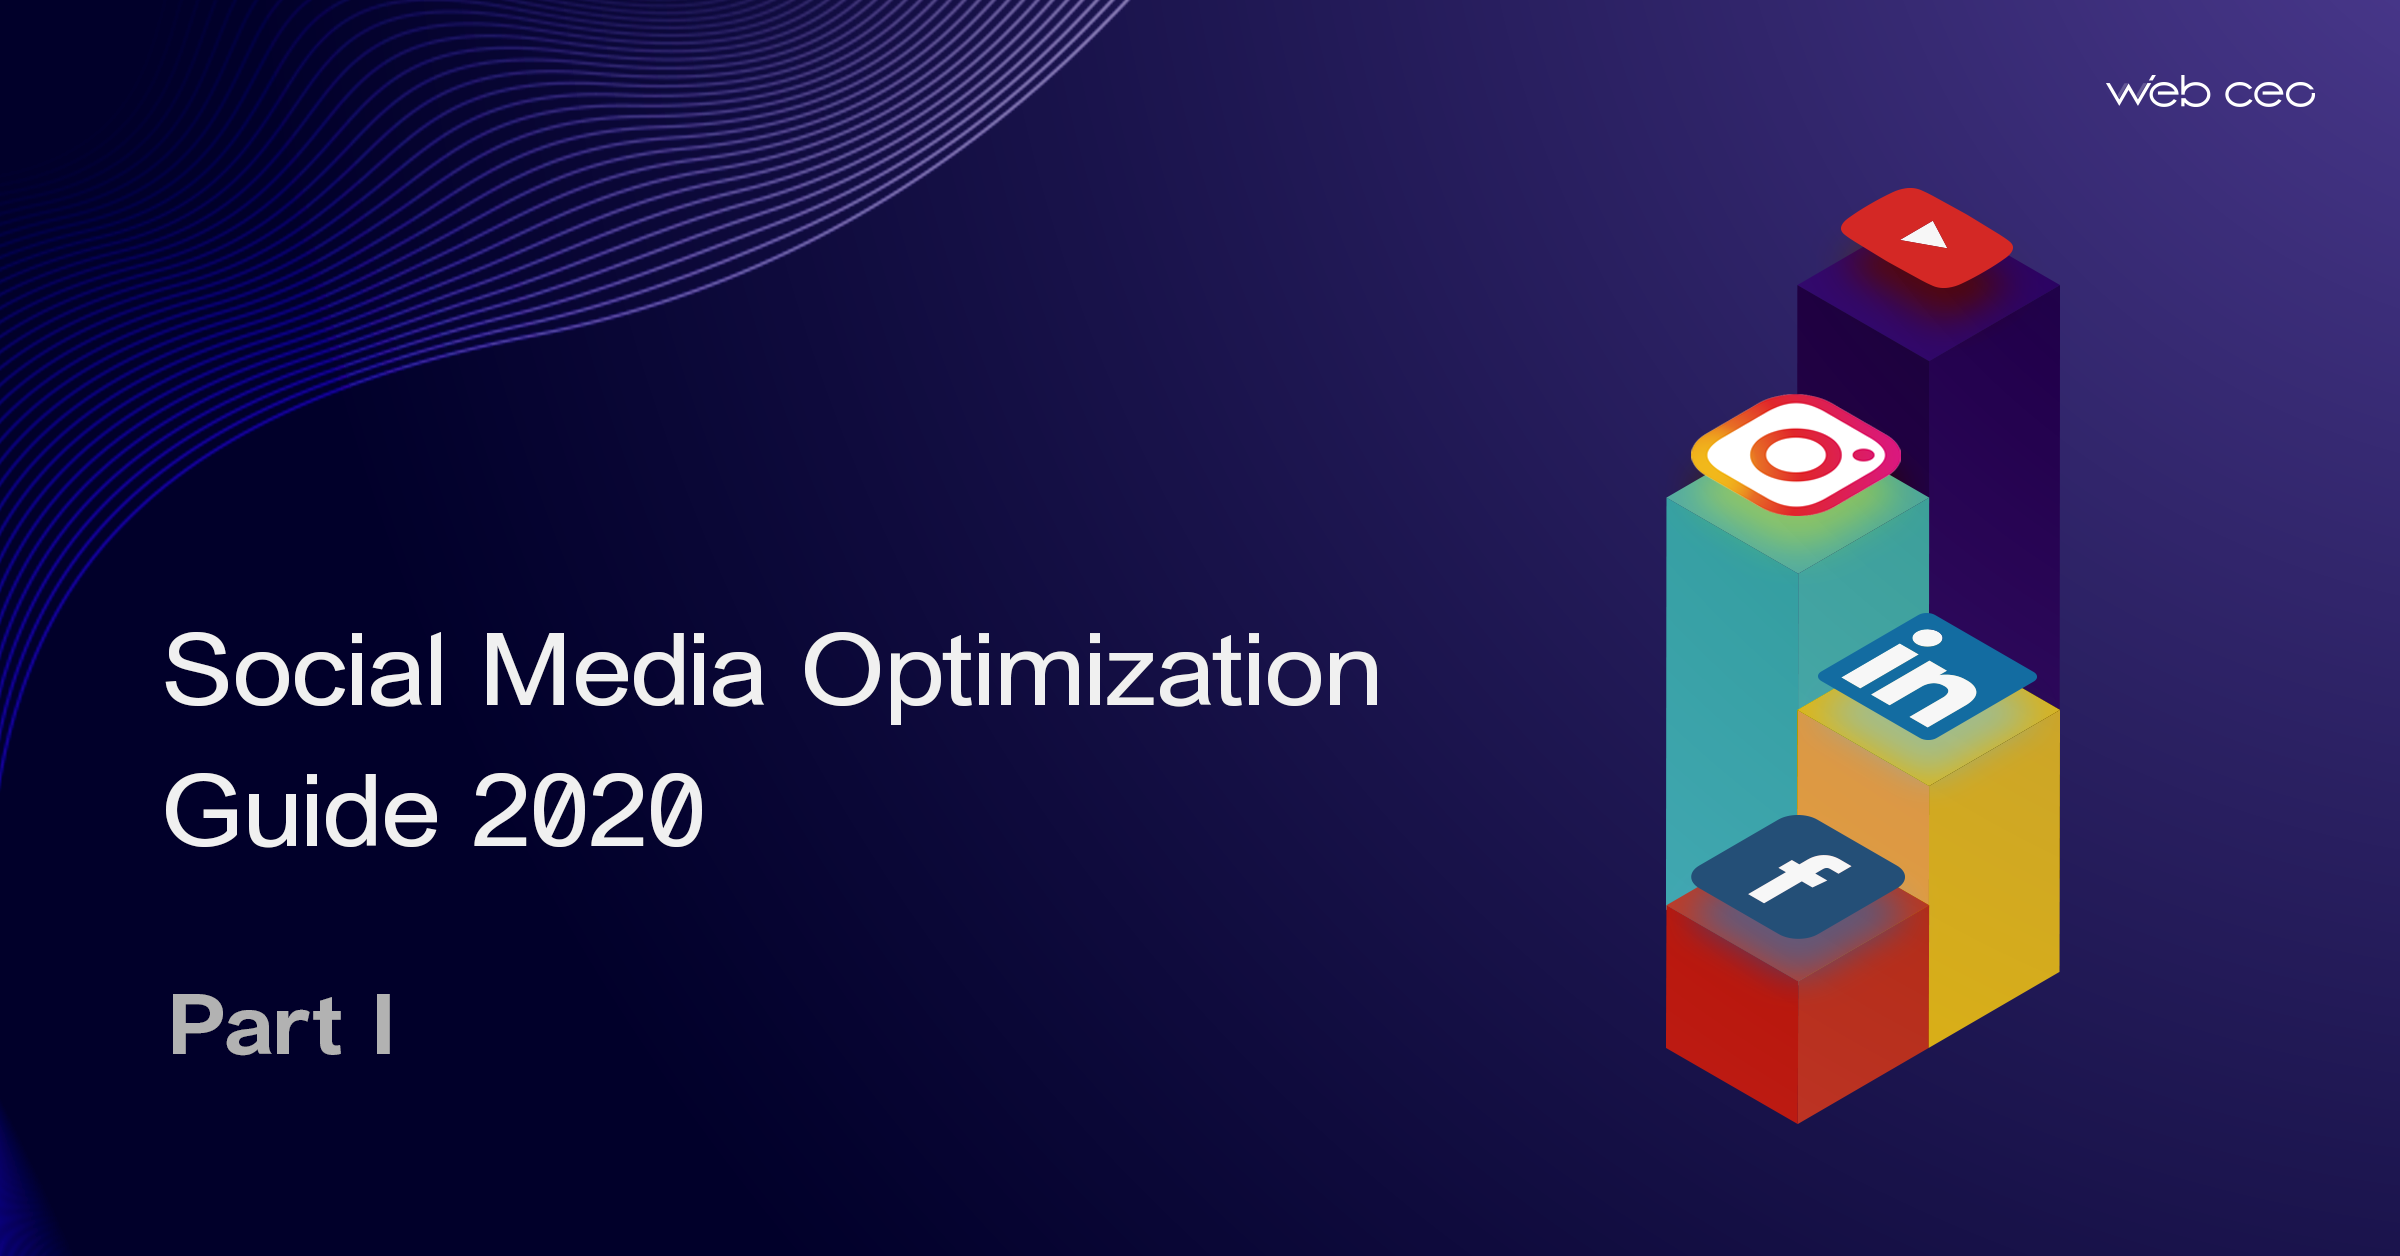 a-step-by-step-guide-to-social-media-optimization-1